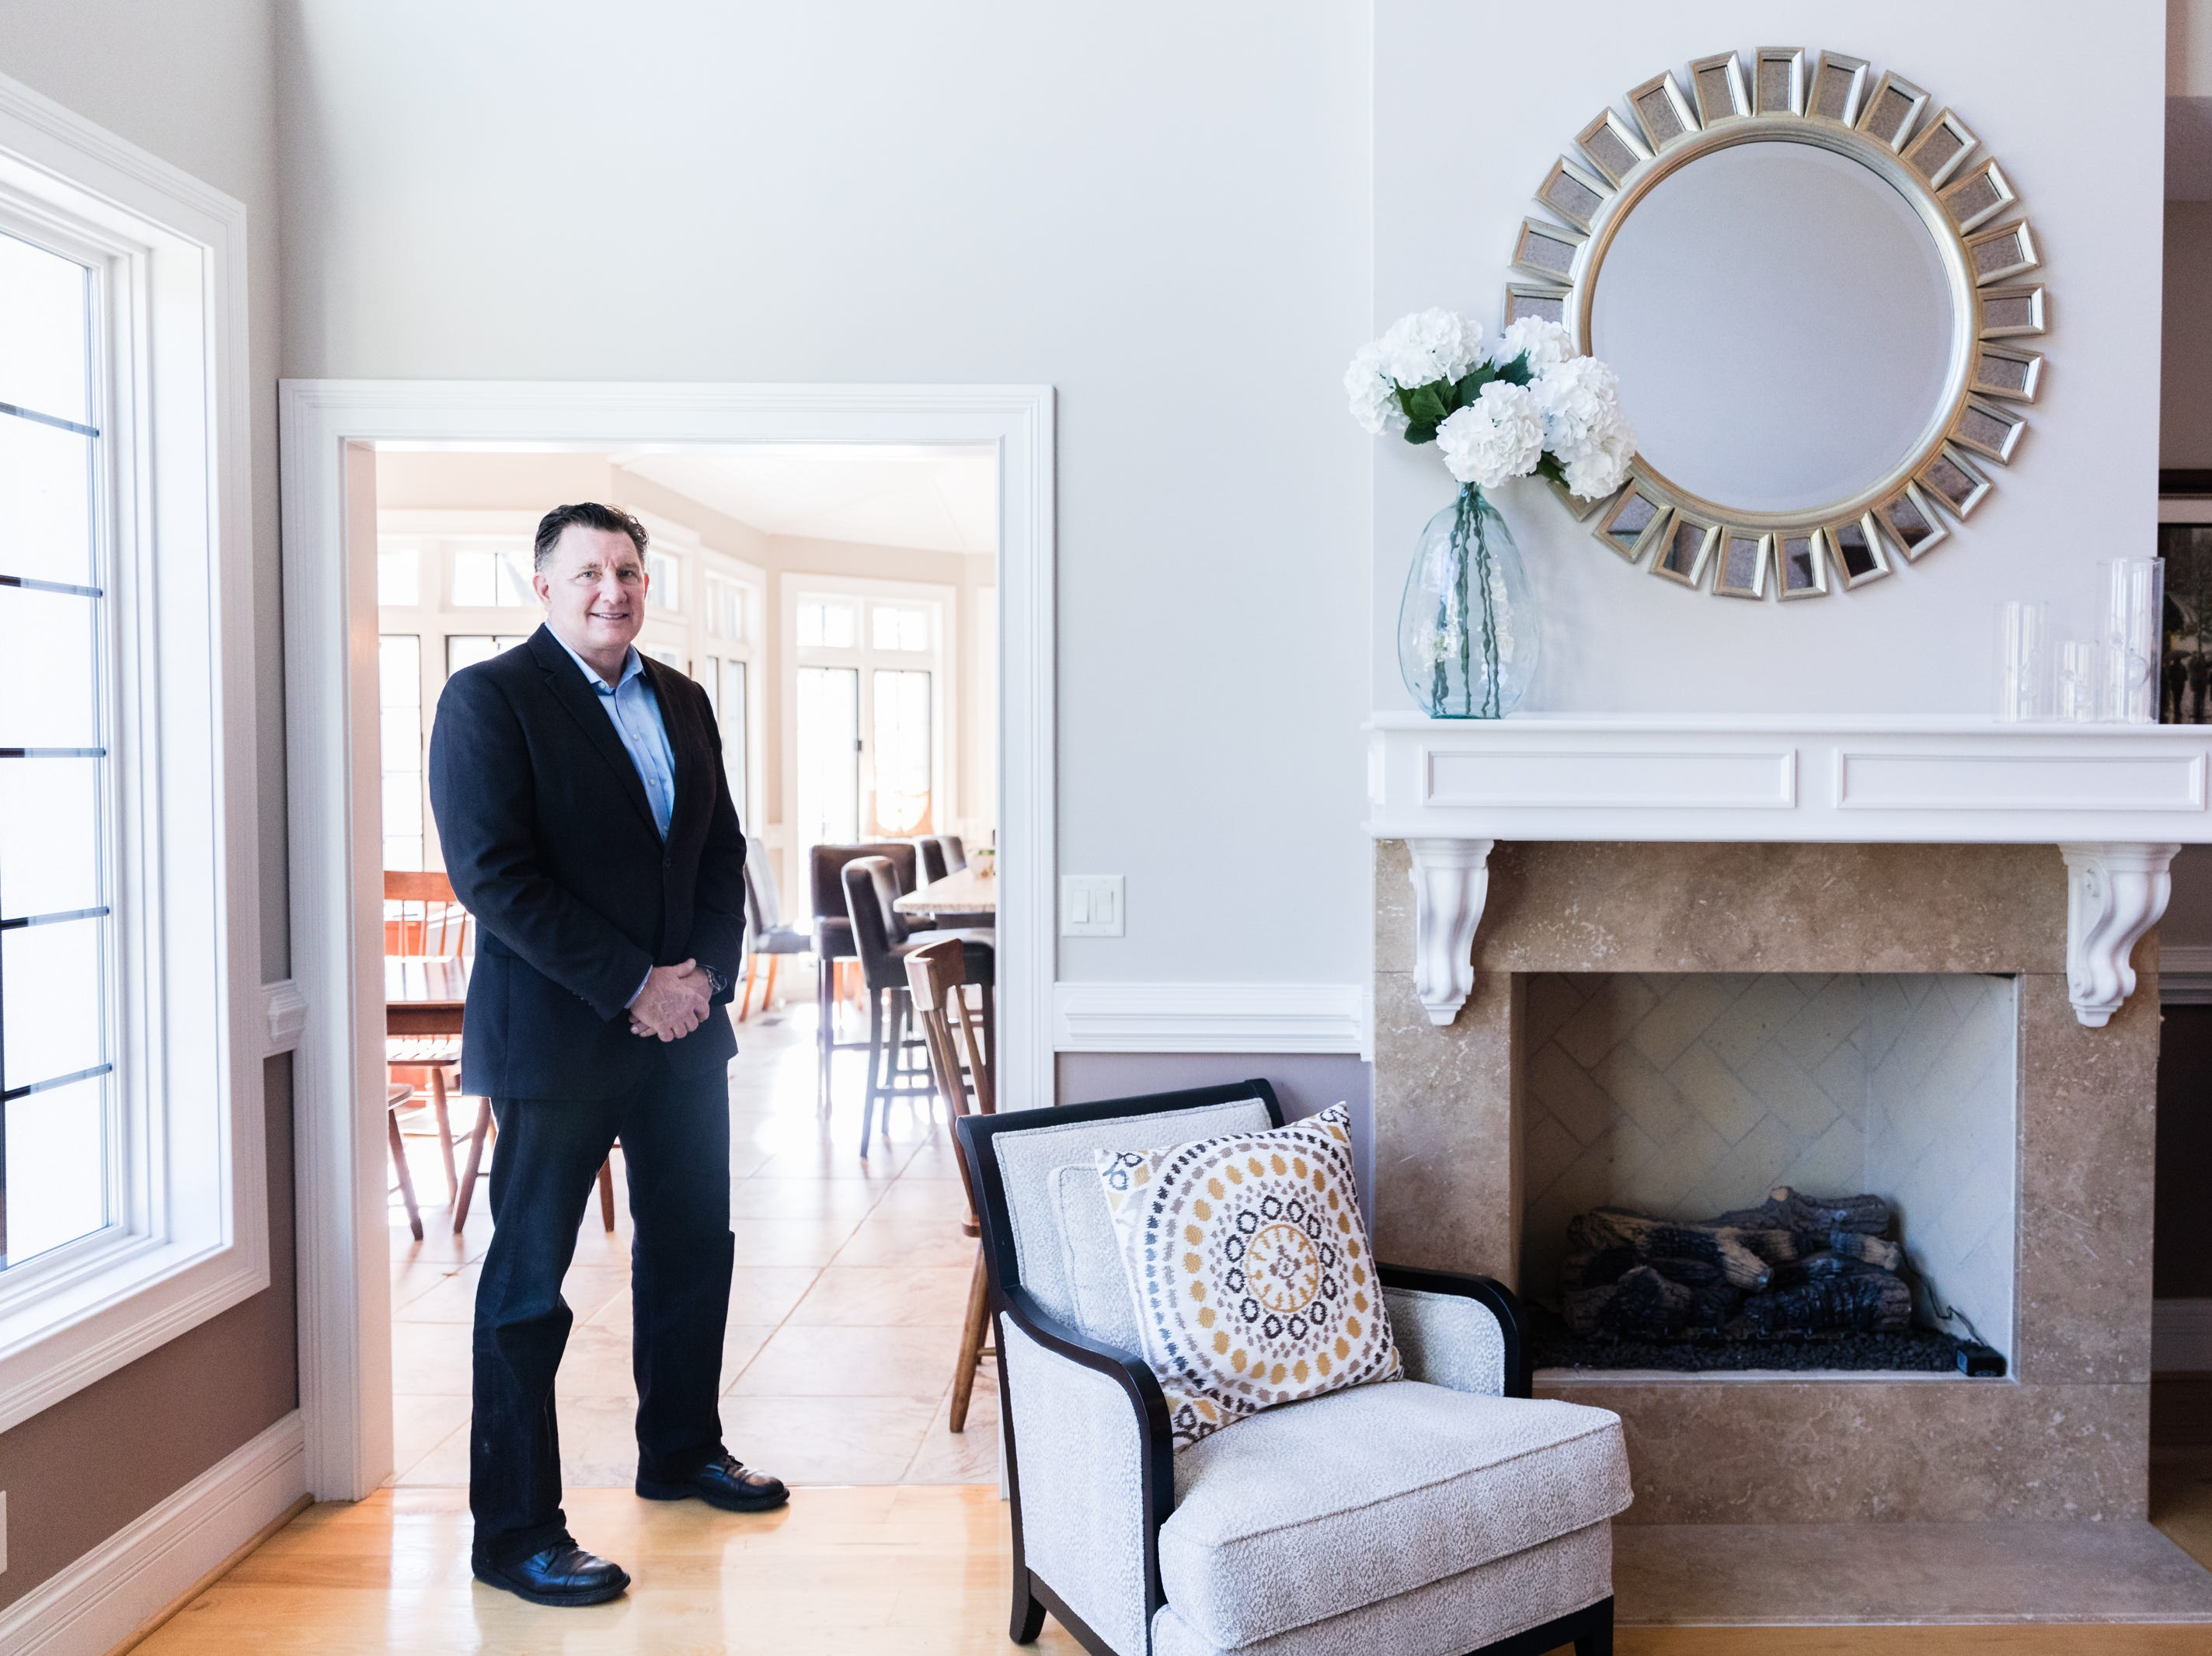 David Dudick, CEO of Plano Synergy, at his country estate in Fletcher which is on the market for $2.9 million.